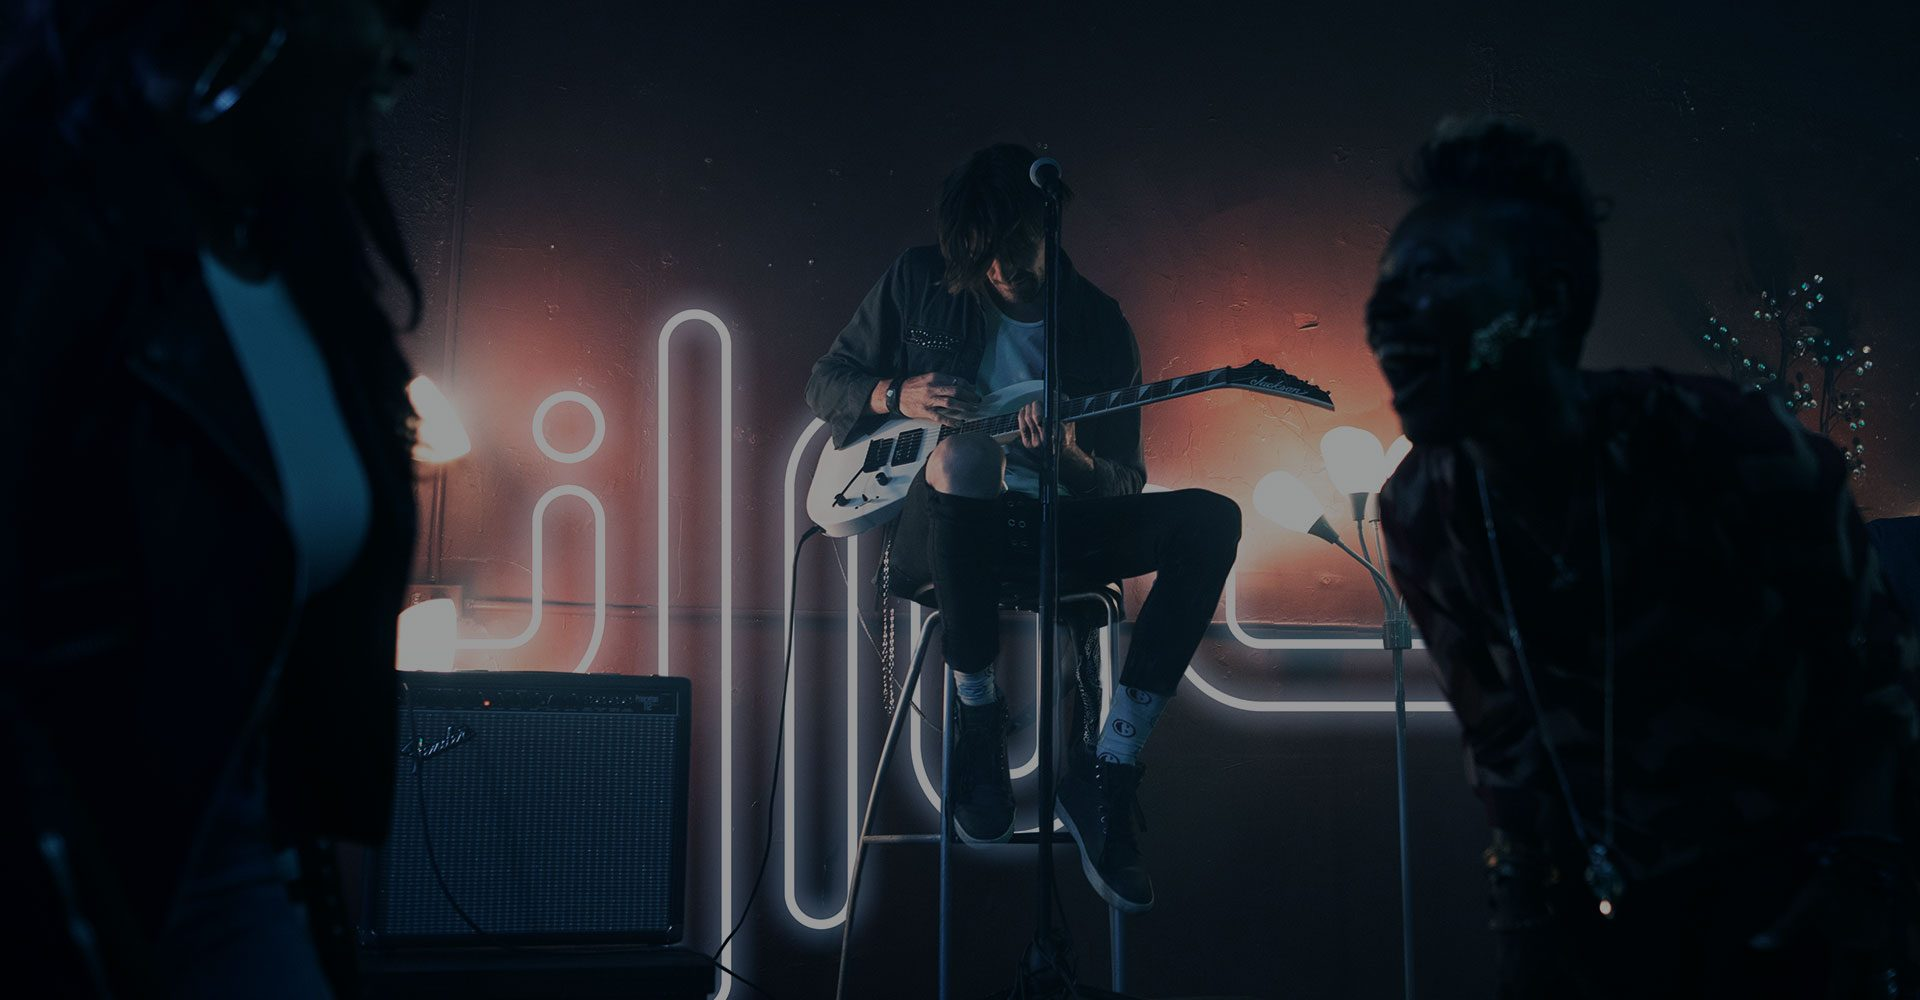 Music production equipment in blue and neon tones